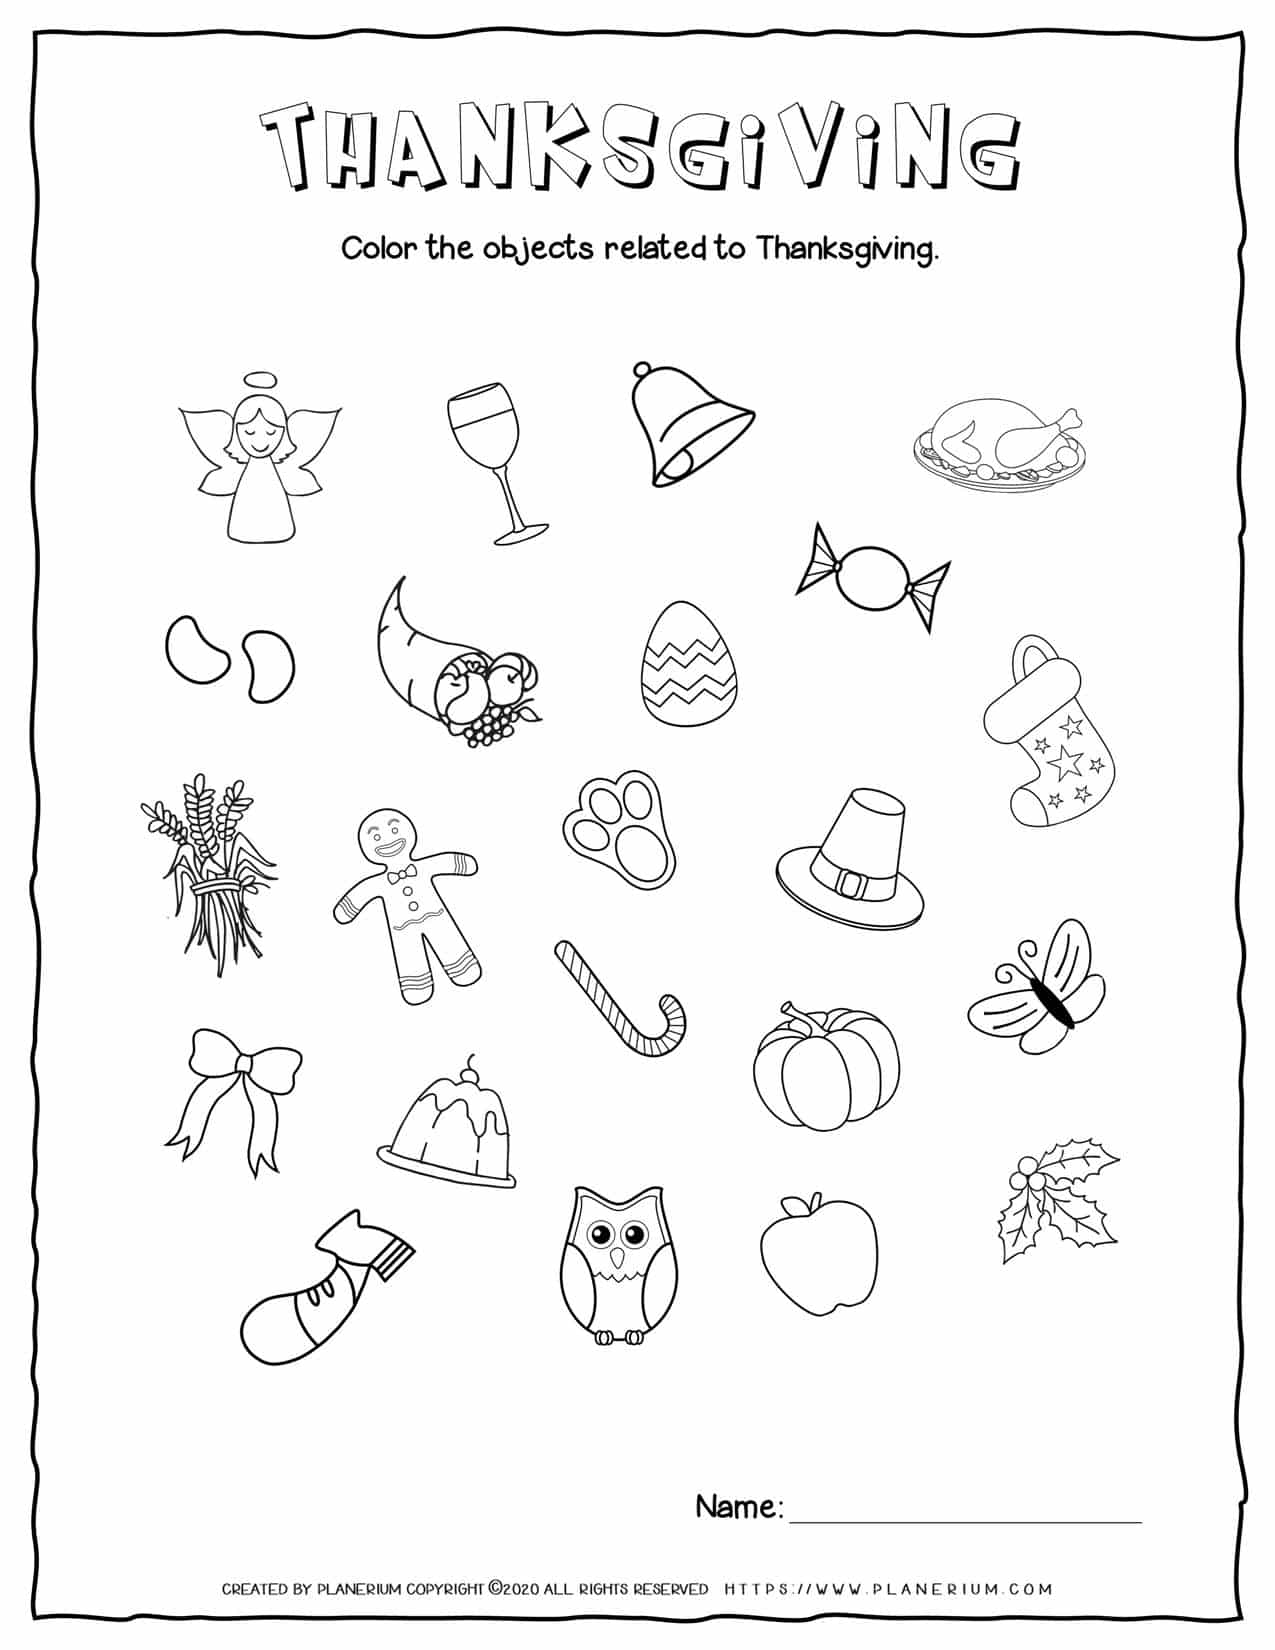 Related Objects - Thanksgiving Worksheet   Planerium